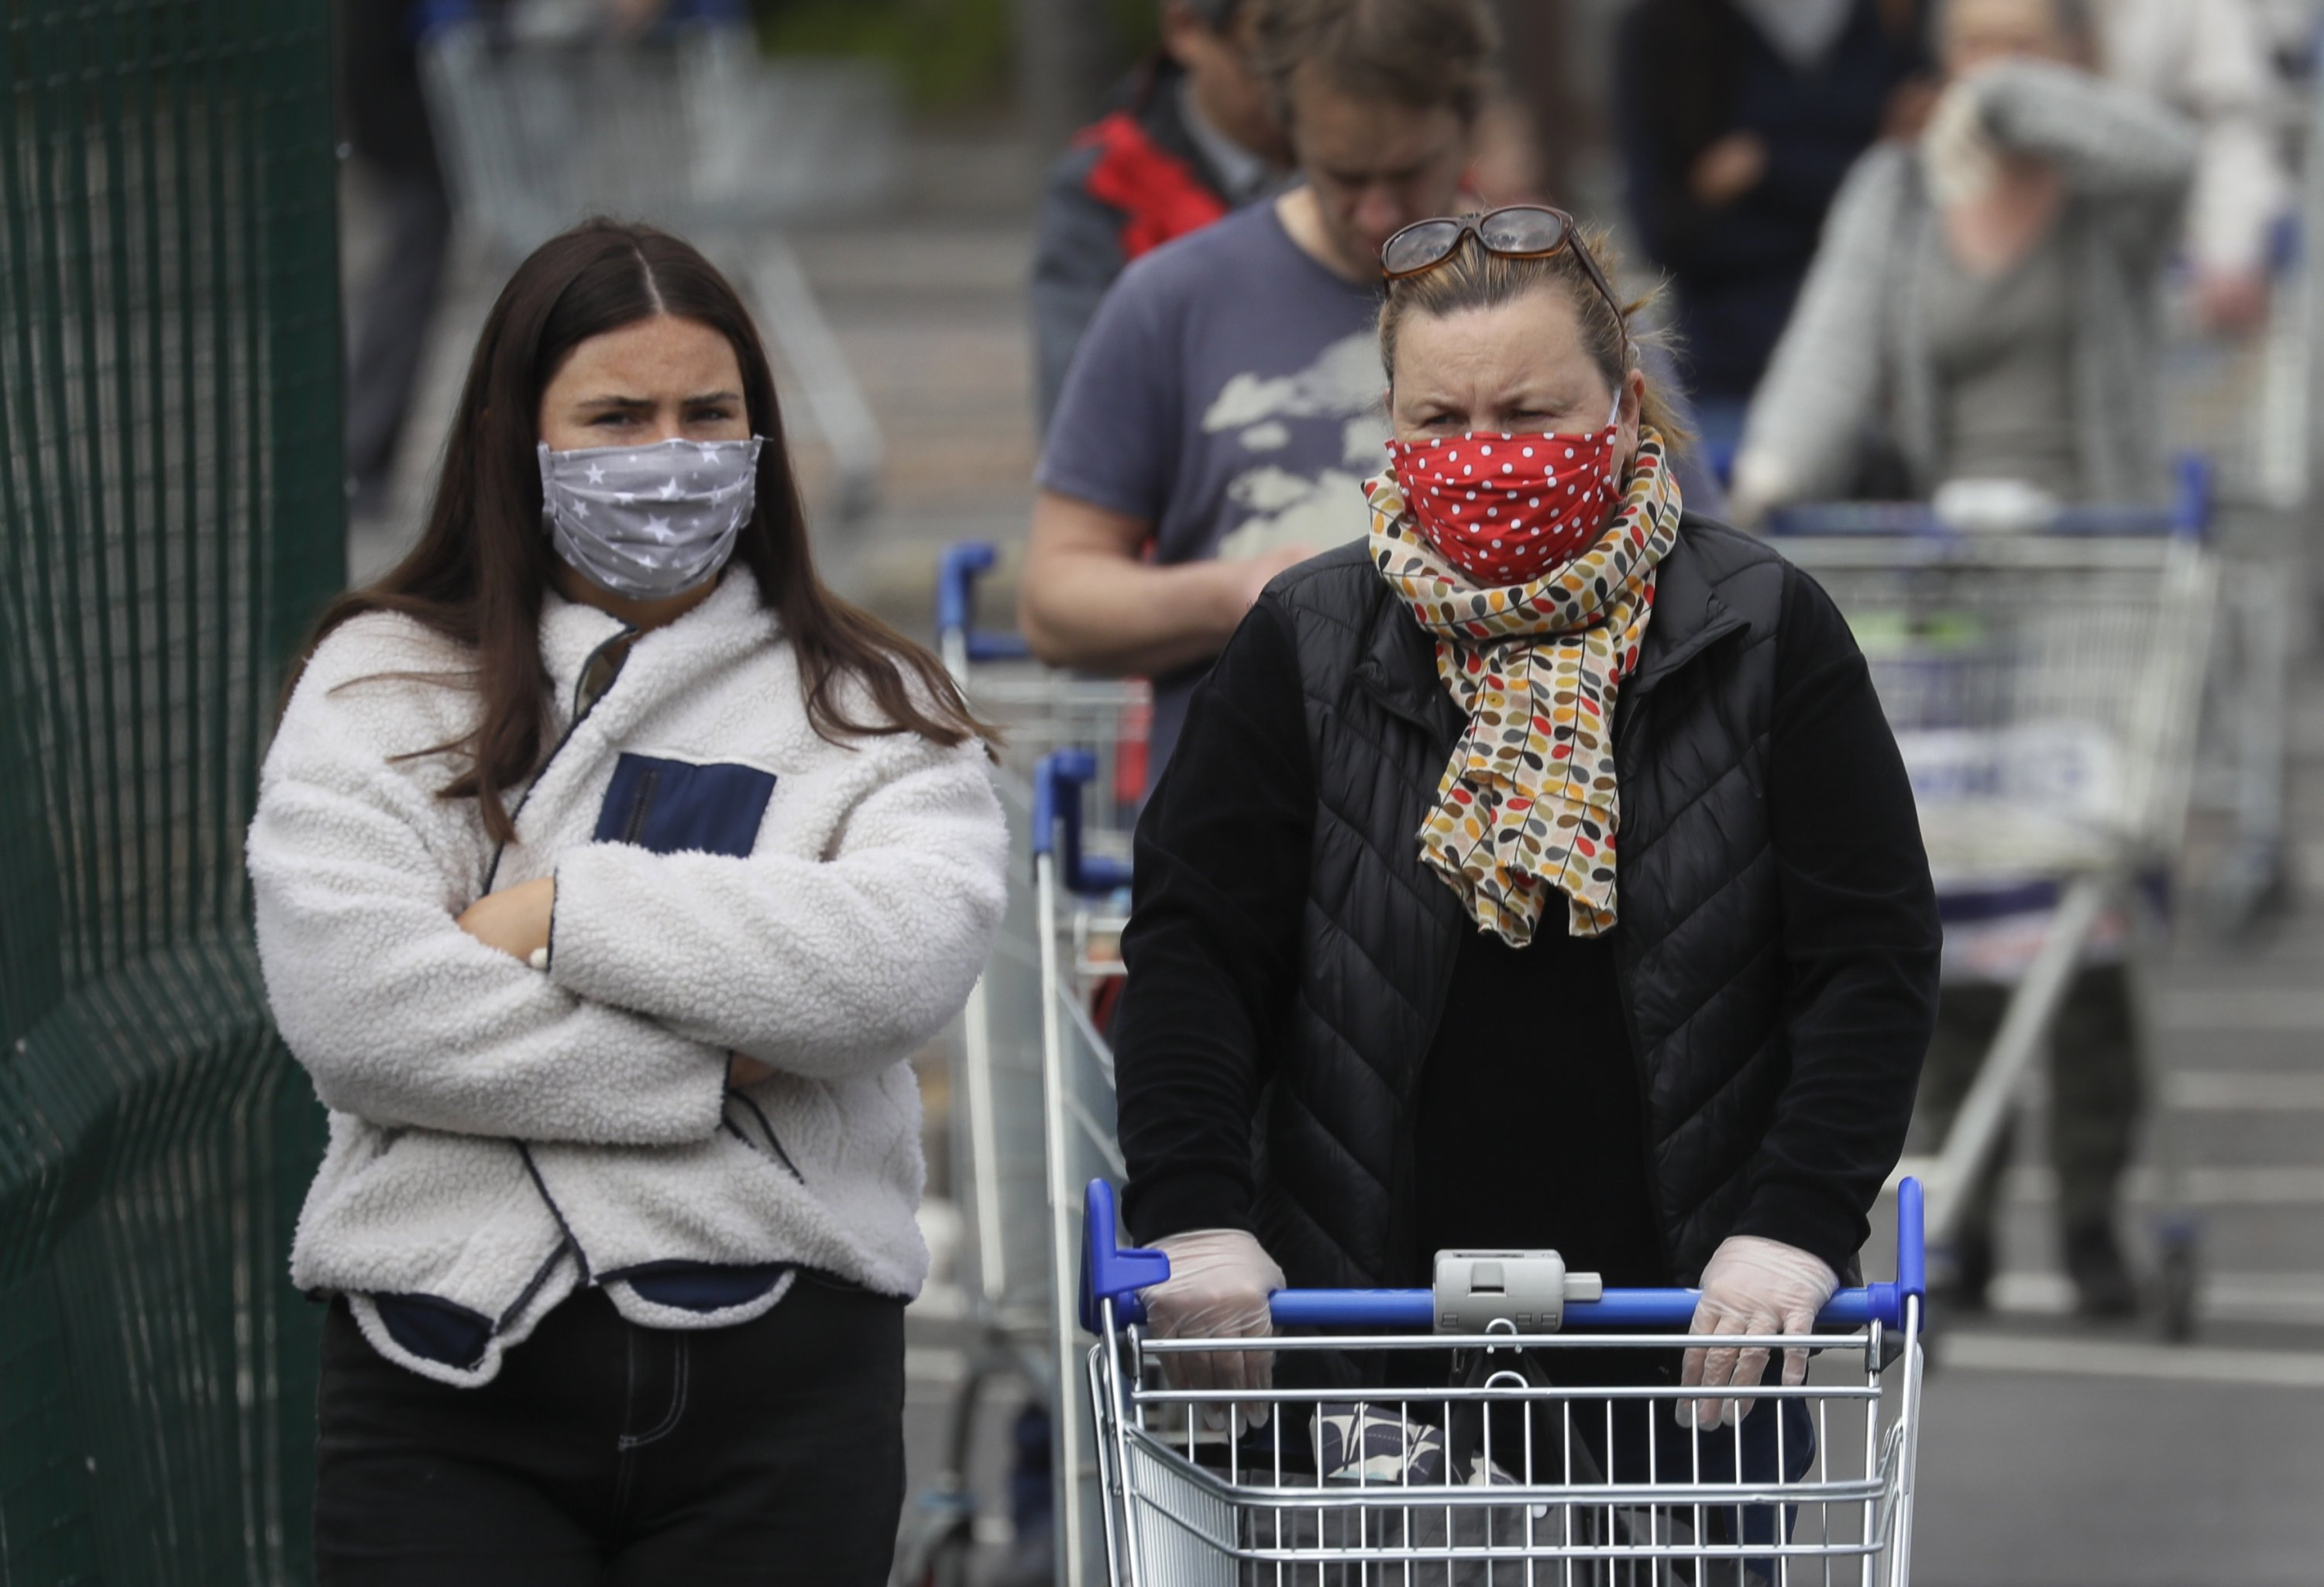 People wear face masks to protect against the coronavirus as they queue to enter a supermarket in London, April 29, 2020. (AP Photo)